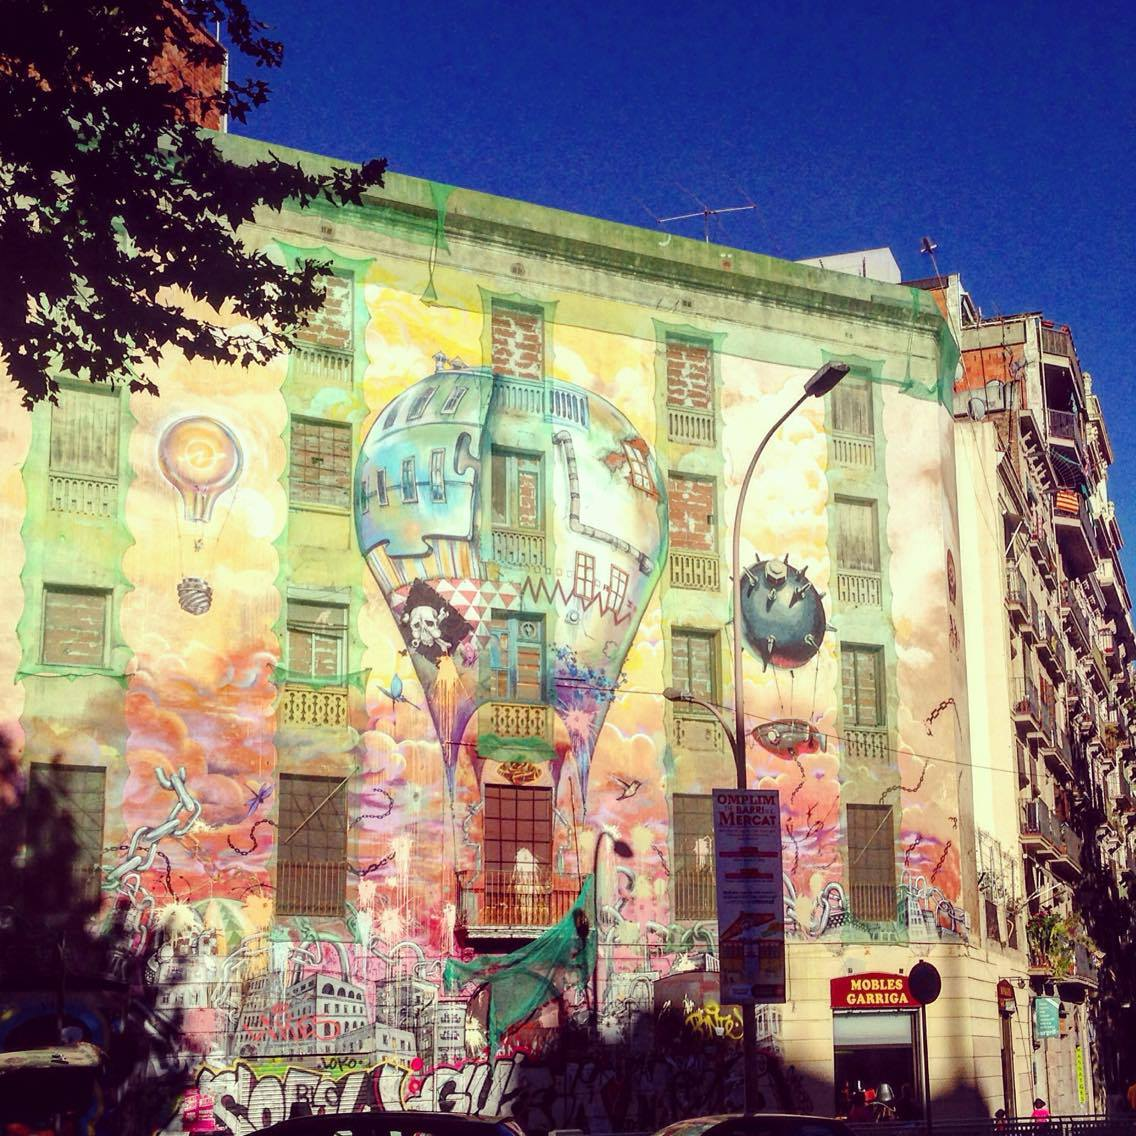 The graffiti-enhanced La Carboneria building in Barcelona's trendy Sant Antoni neighbourhood.